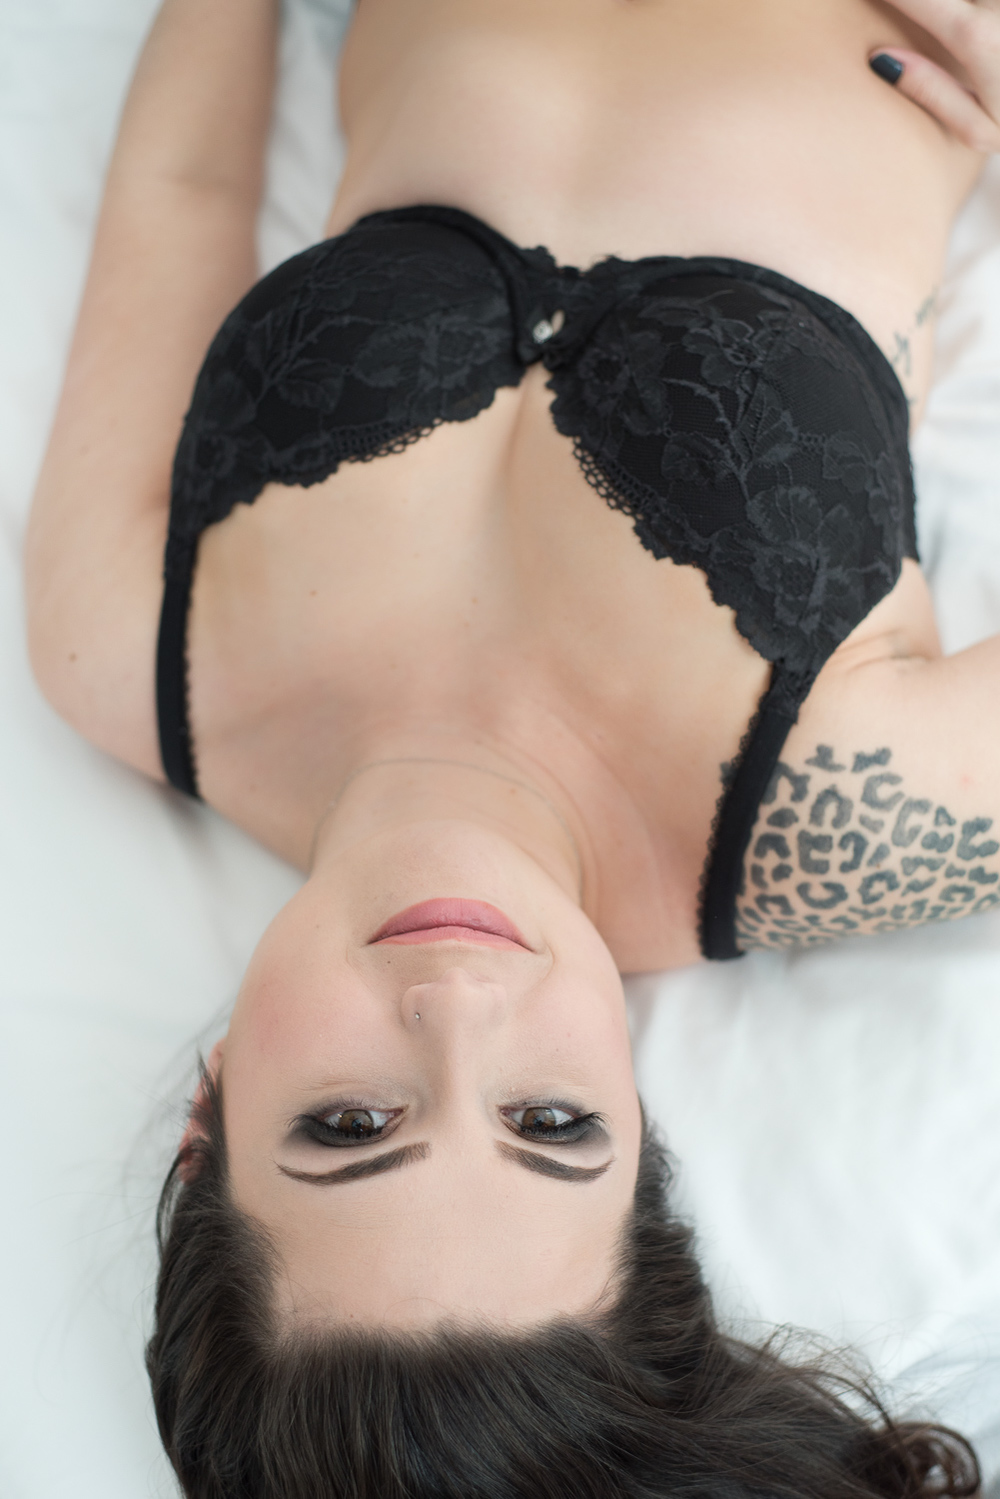 Have you ever wondered what it's like to do boudoir photos? Read about it from a client's perspective! via D. Phillips Photography